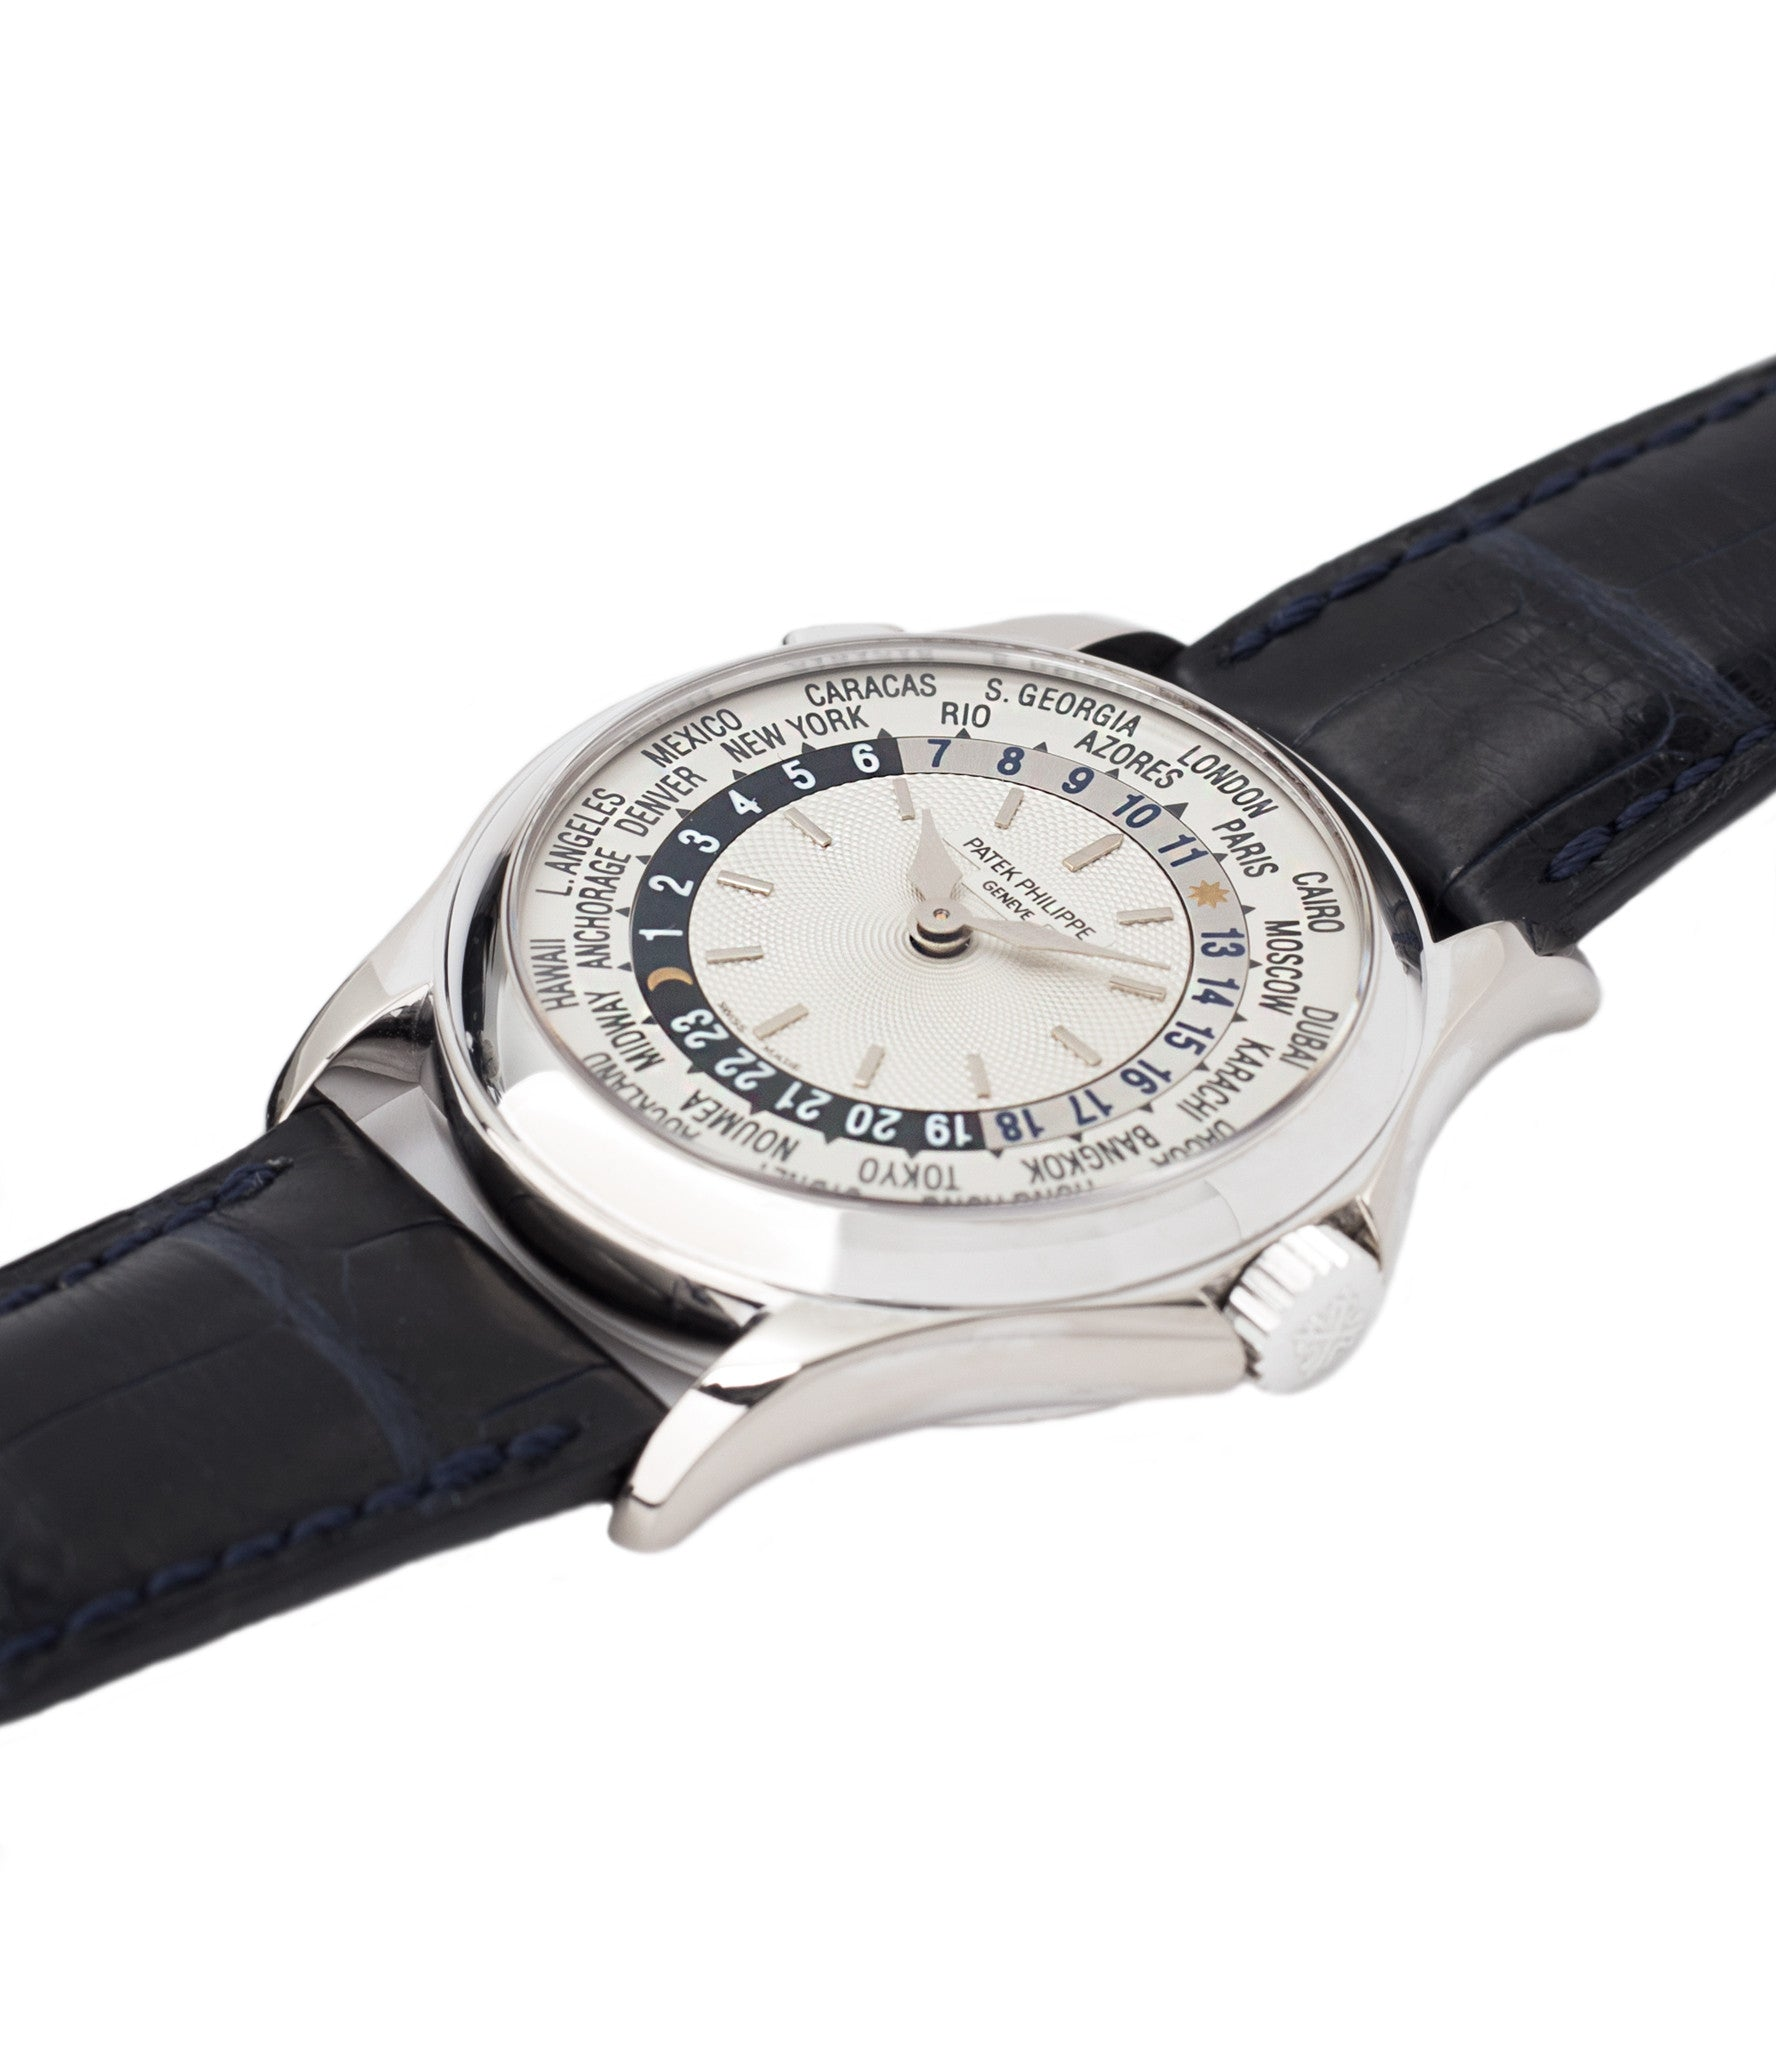 for sale Patek Philippe 5110G-001 white gold World-timer luxury dress watch online for sale at A Collected Man London specialist preowned luxury watches